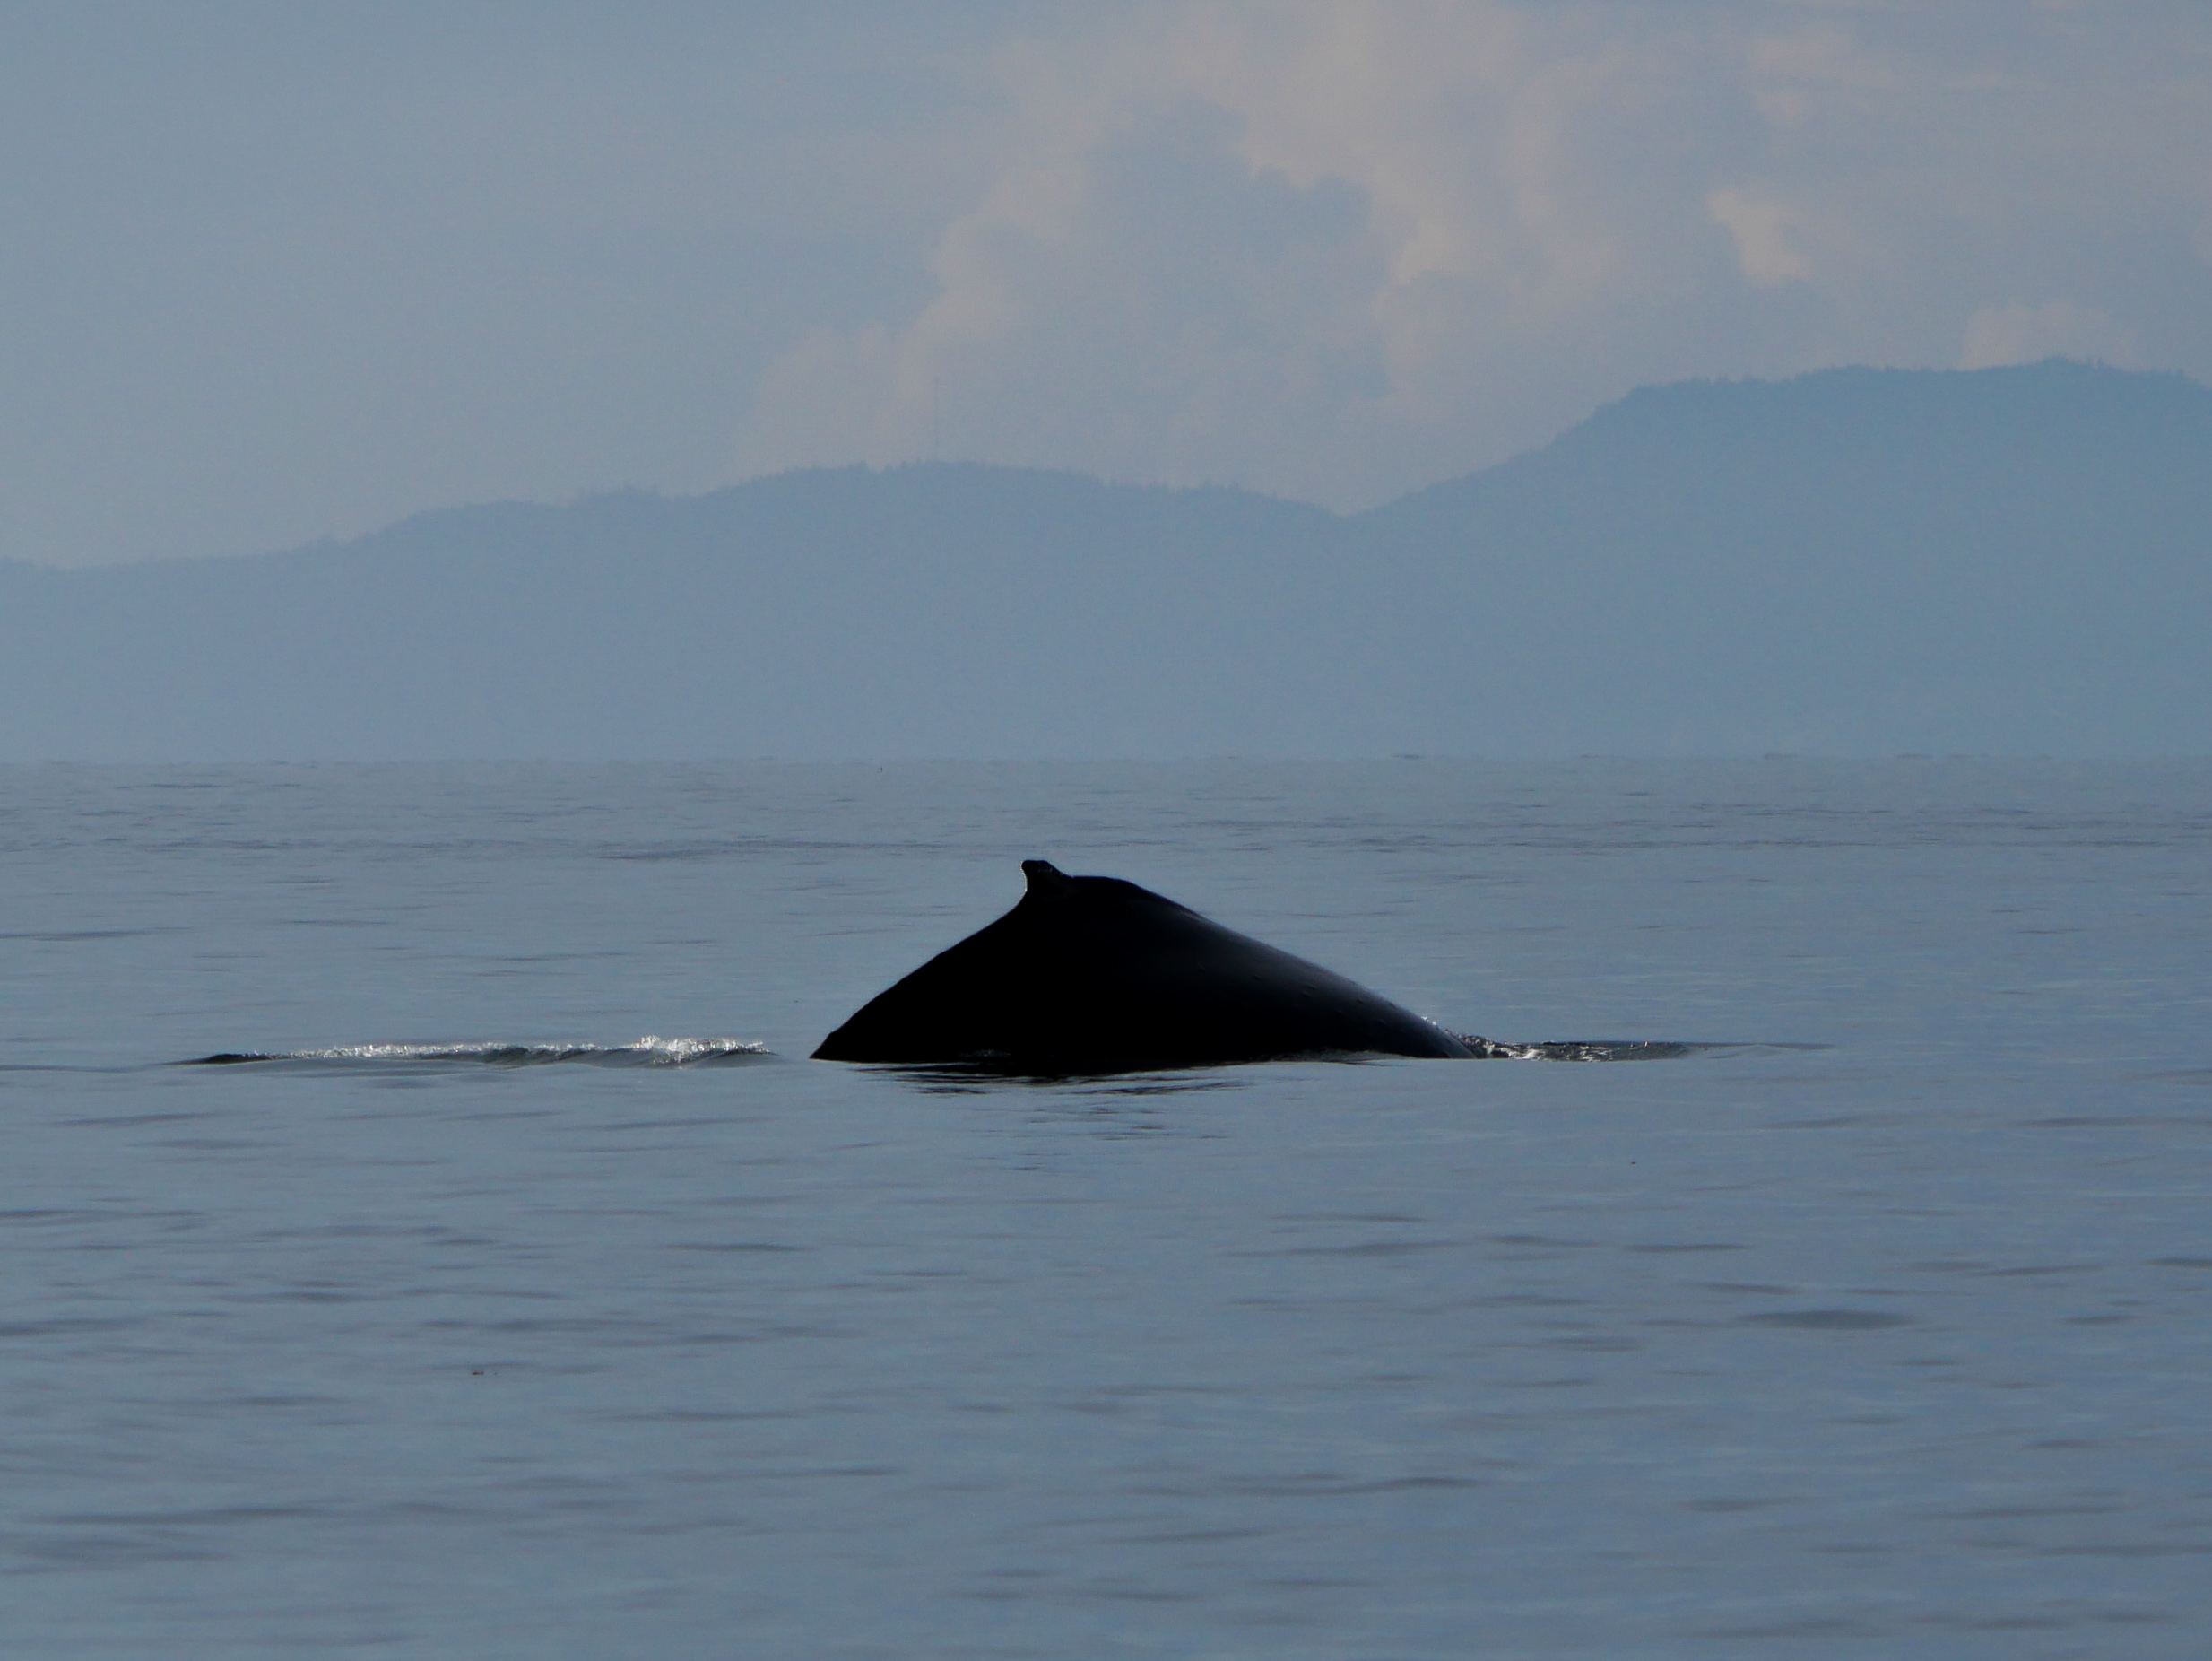 When going for a deep dive, the humpback arches its back even more! Photo by Rodrigo Menezes - 3:30 tour.